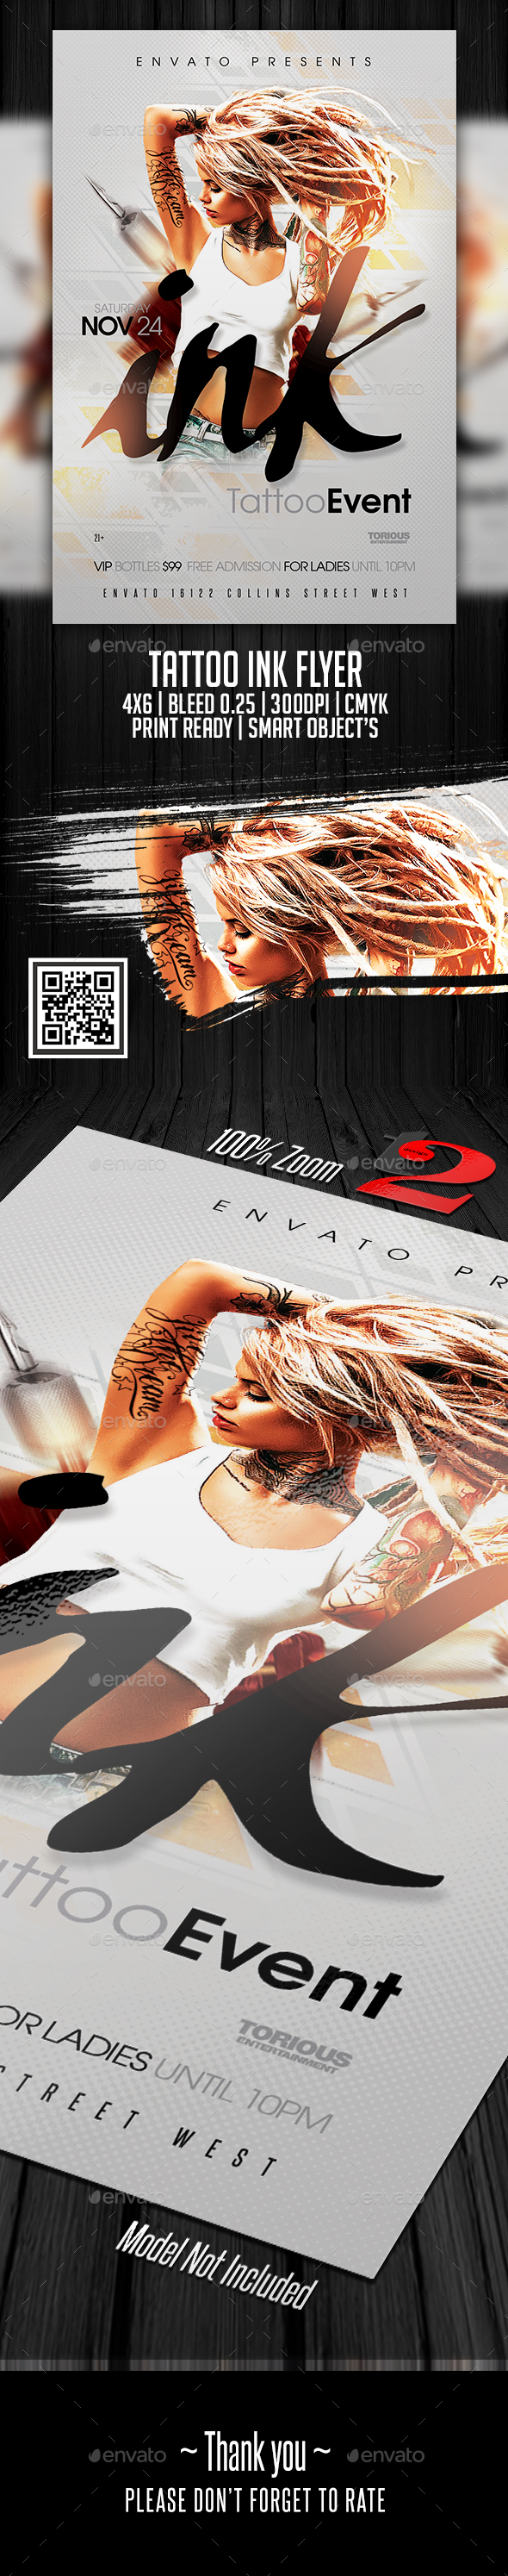 Tattoo Party - Tattoo Convention Flyer - Clubs & Parties Events